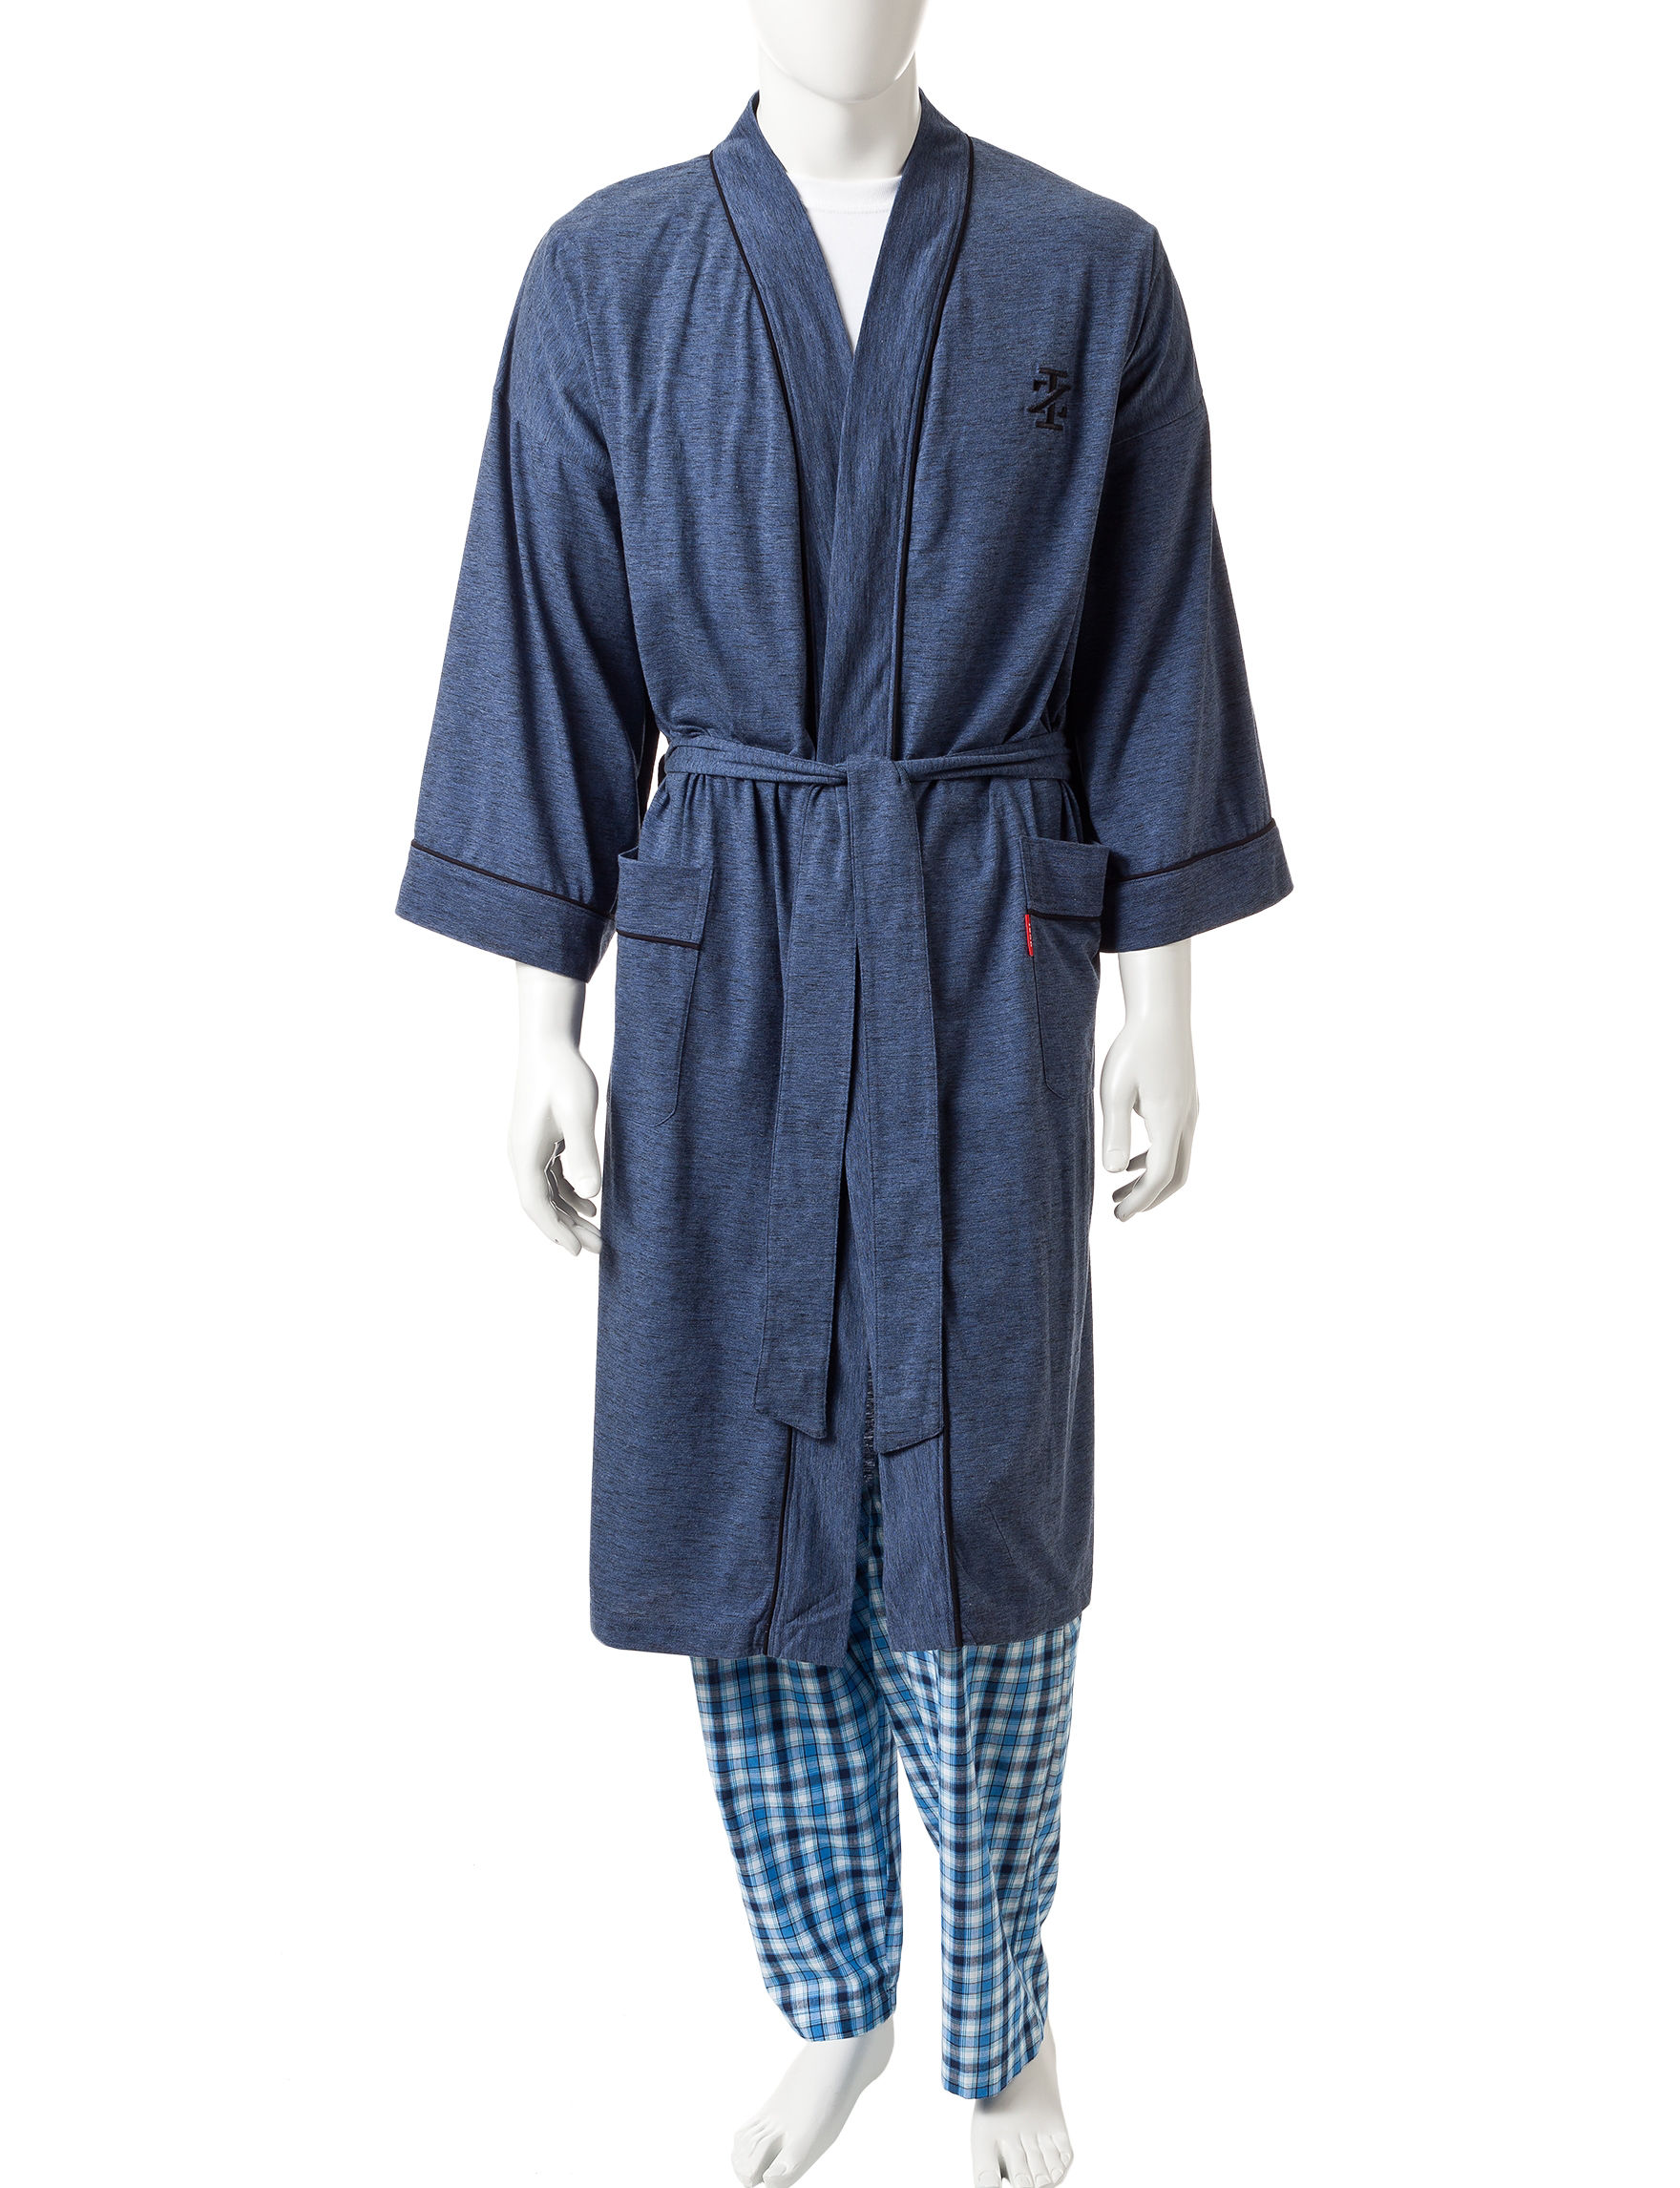 Izod Navy Robes, Wraps & Dusters